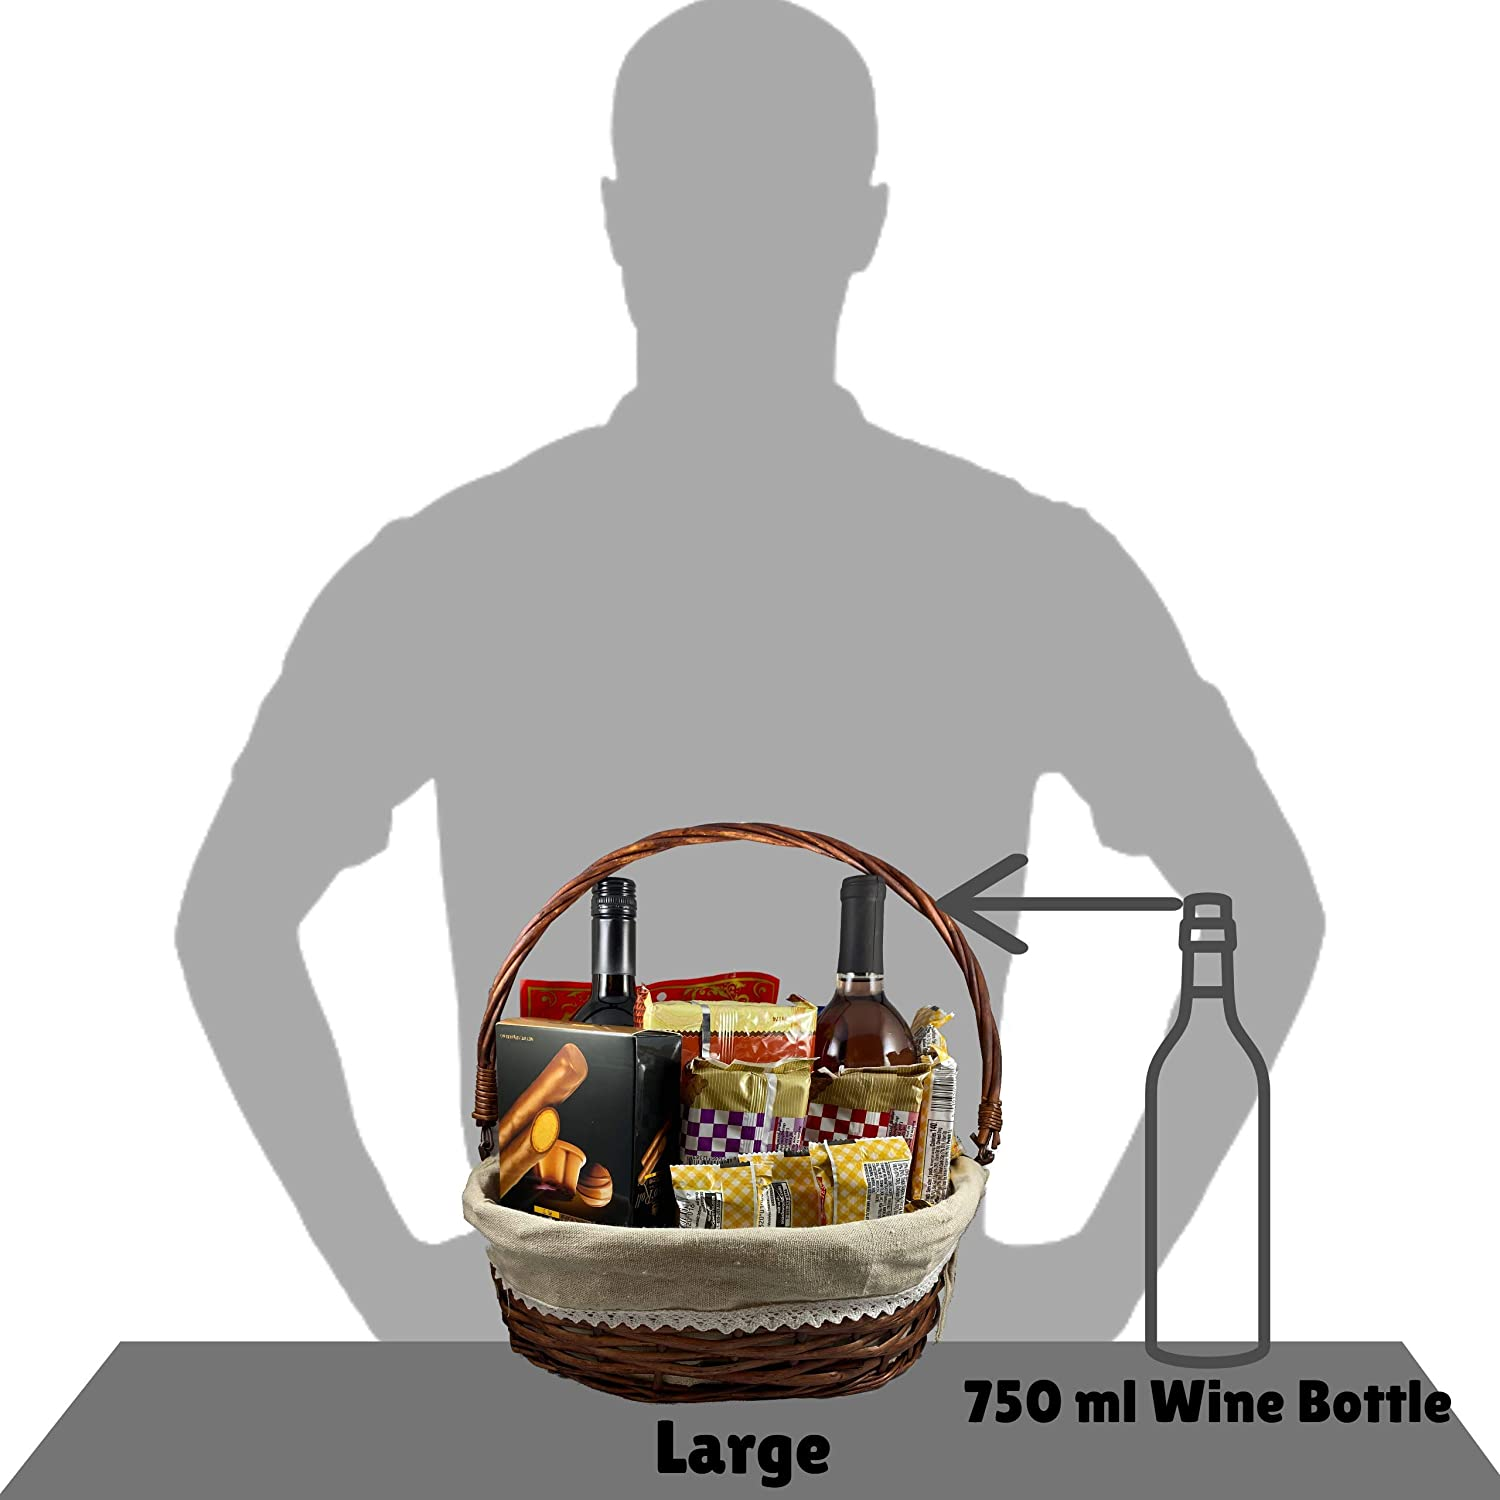 Brown 3PK Food Empty Basket for Wine Christmas Easter Complete DIY Gift Set include Heat Shrink Cellophane Bags and Ribbons Storage Trebisky Wicker Basket with Cello Wrap Picnic Birthday